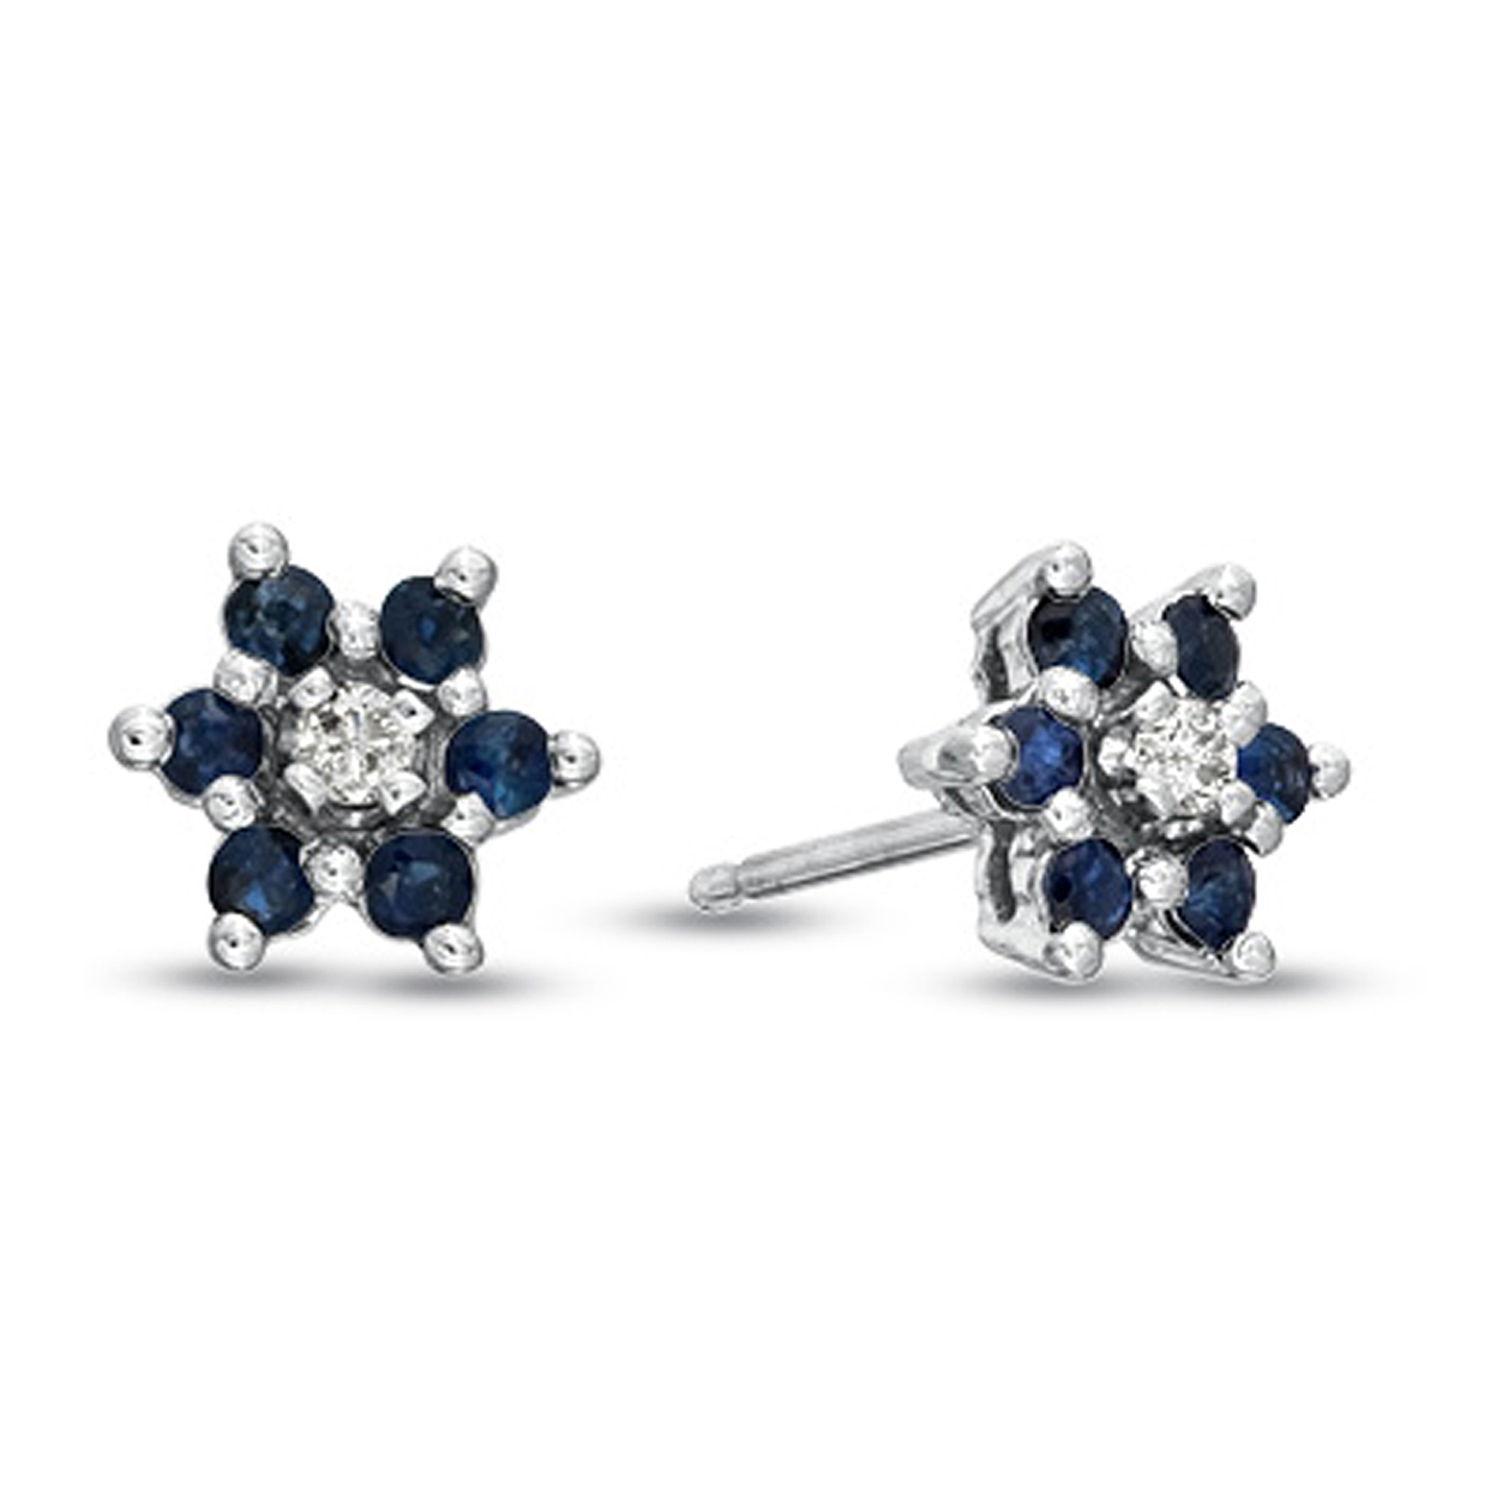 View 0.48cttw Sapphire and Diamond Flower Cluster Earrings set in 14k Gold